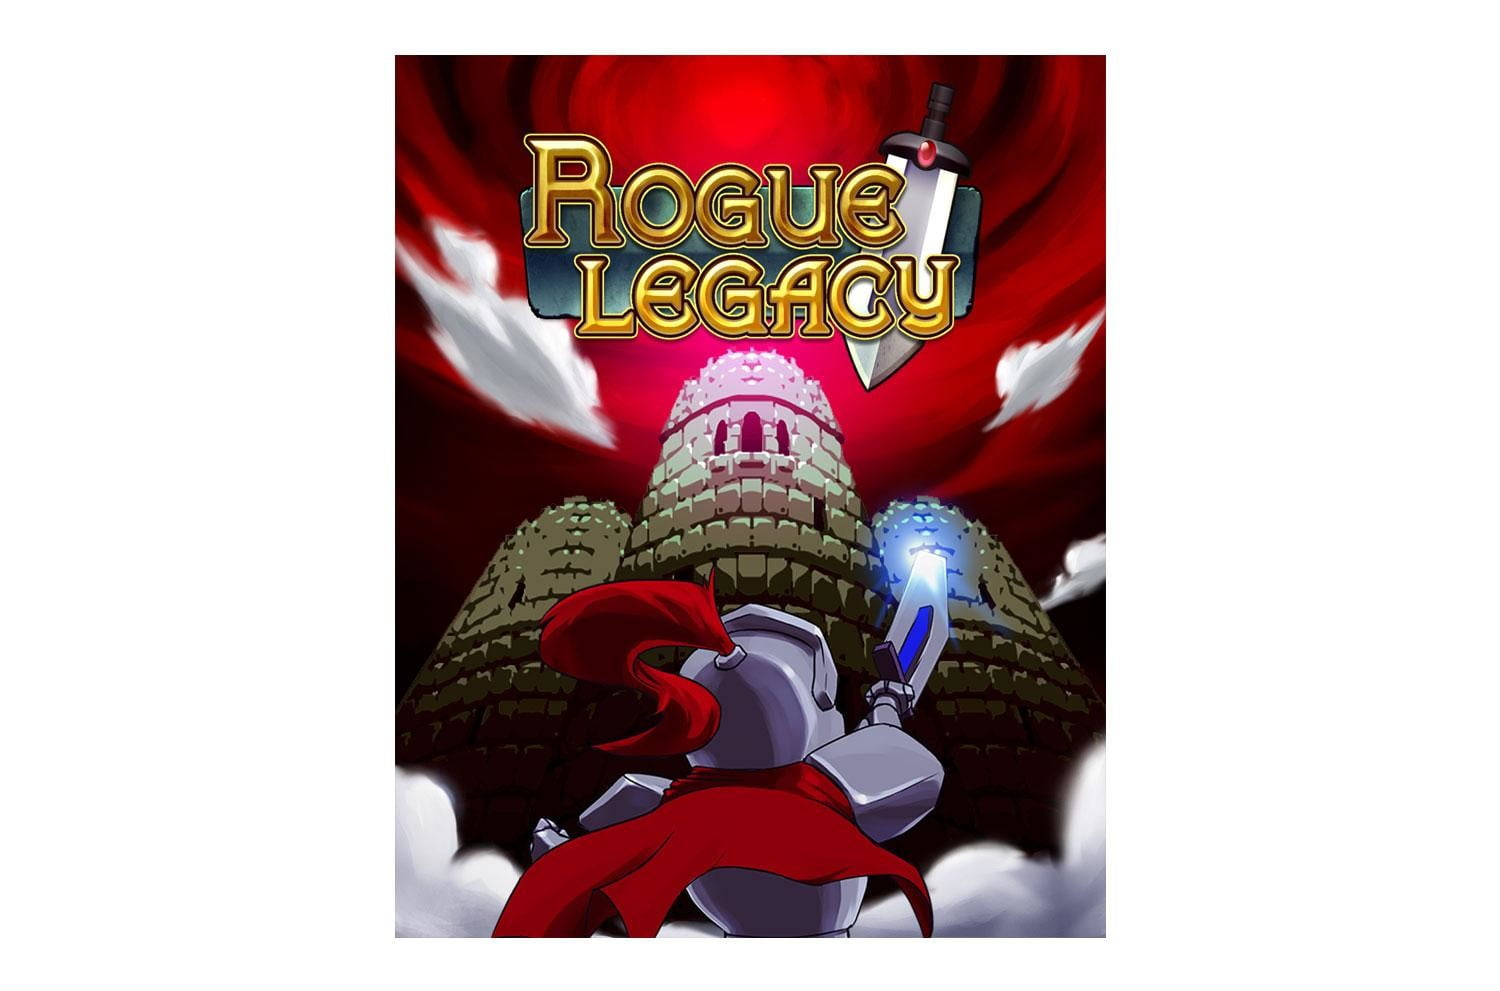 Rogue-Legacy-cover-art